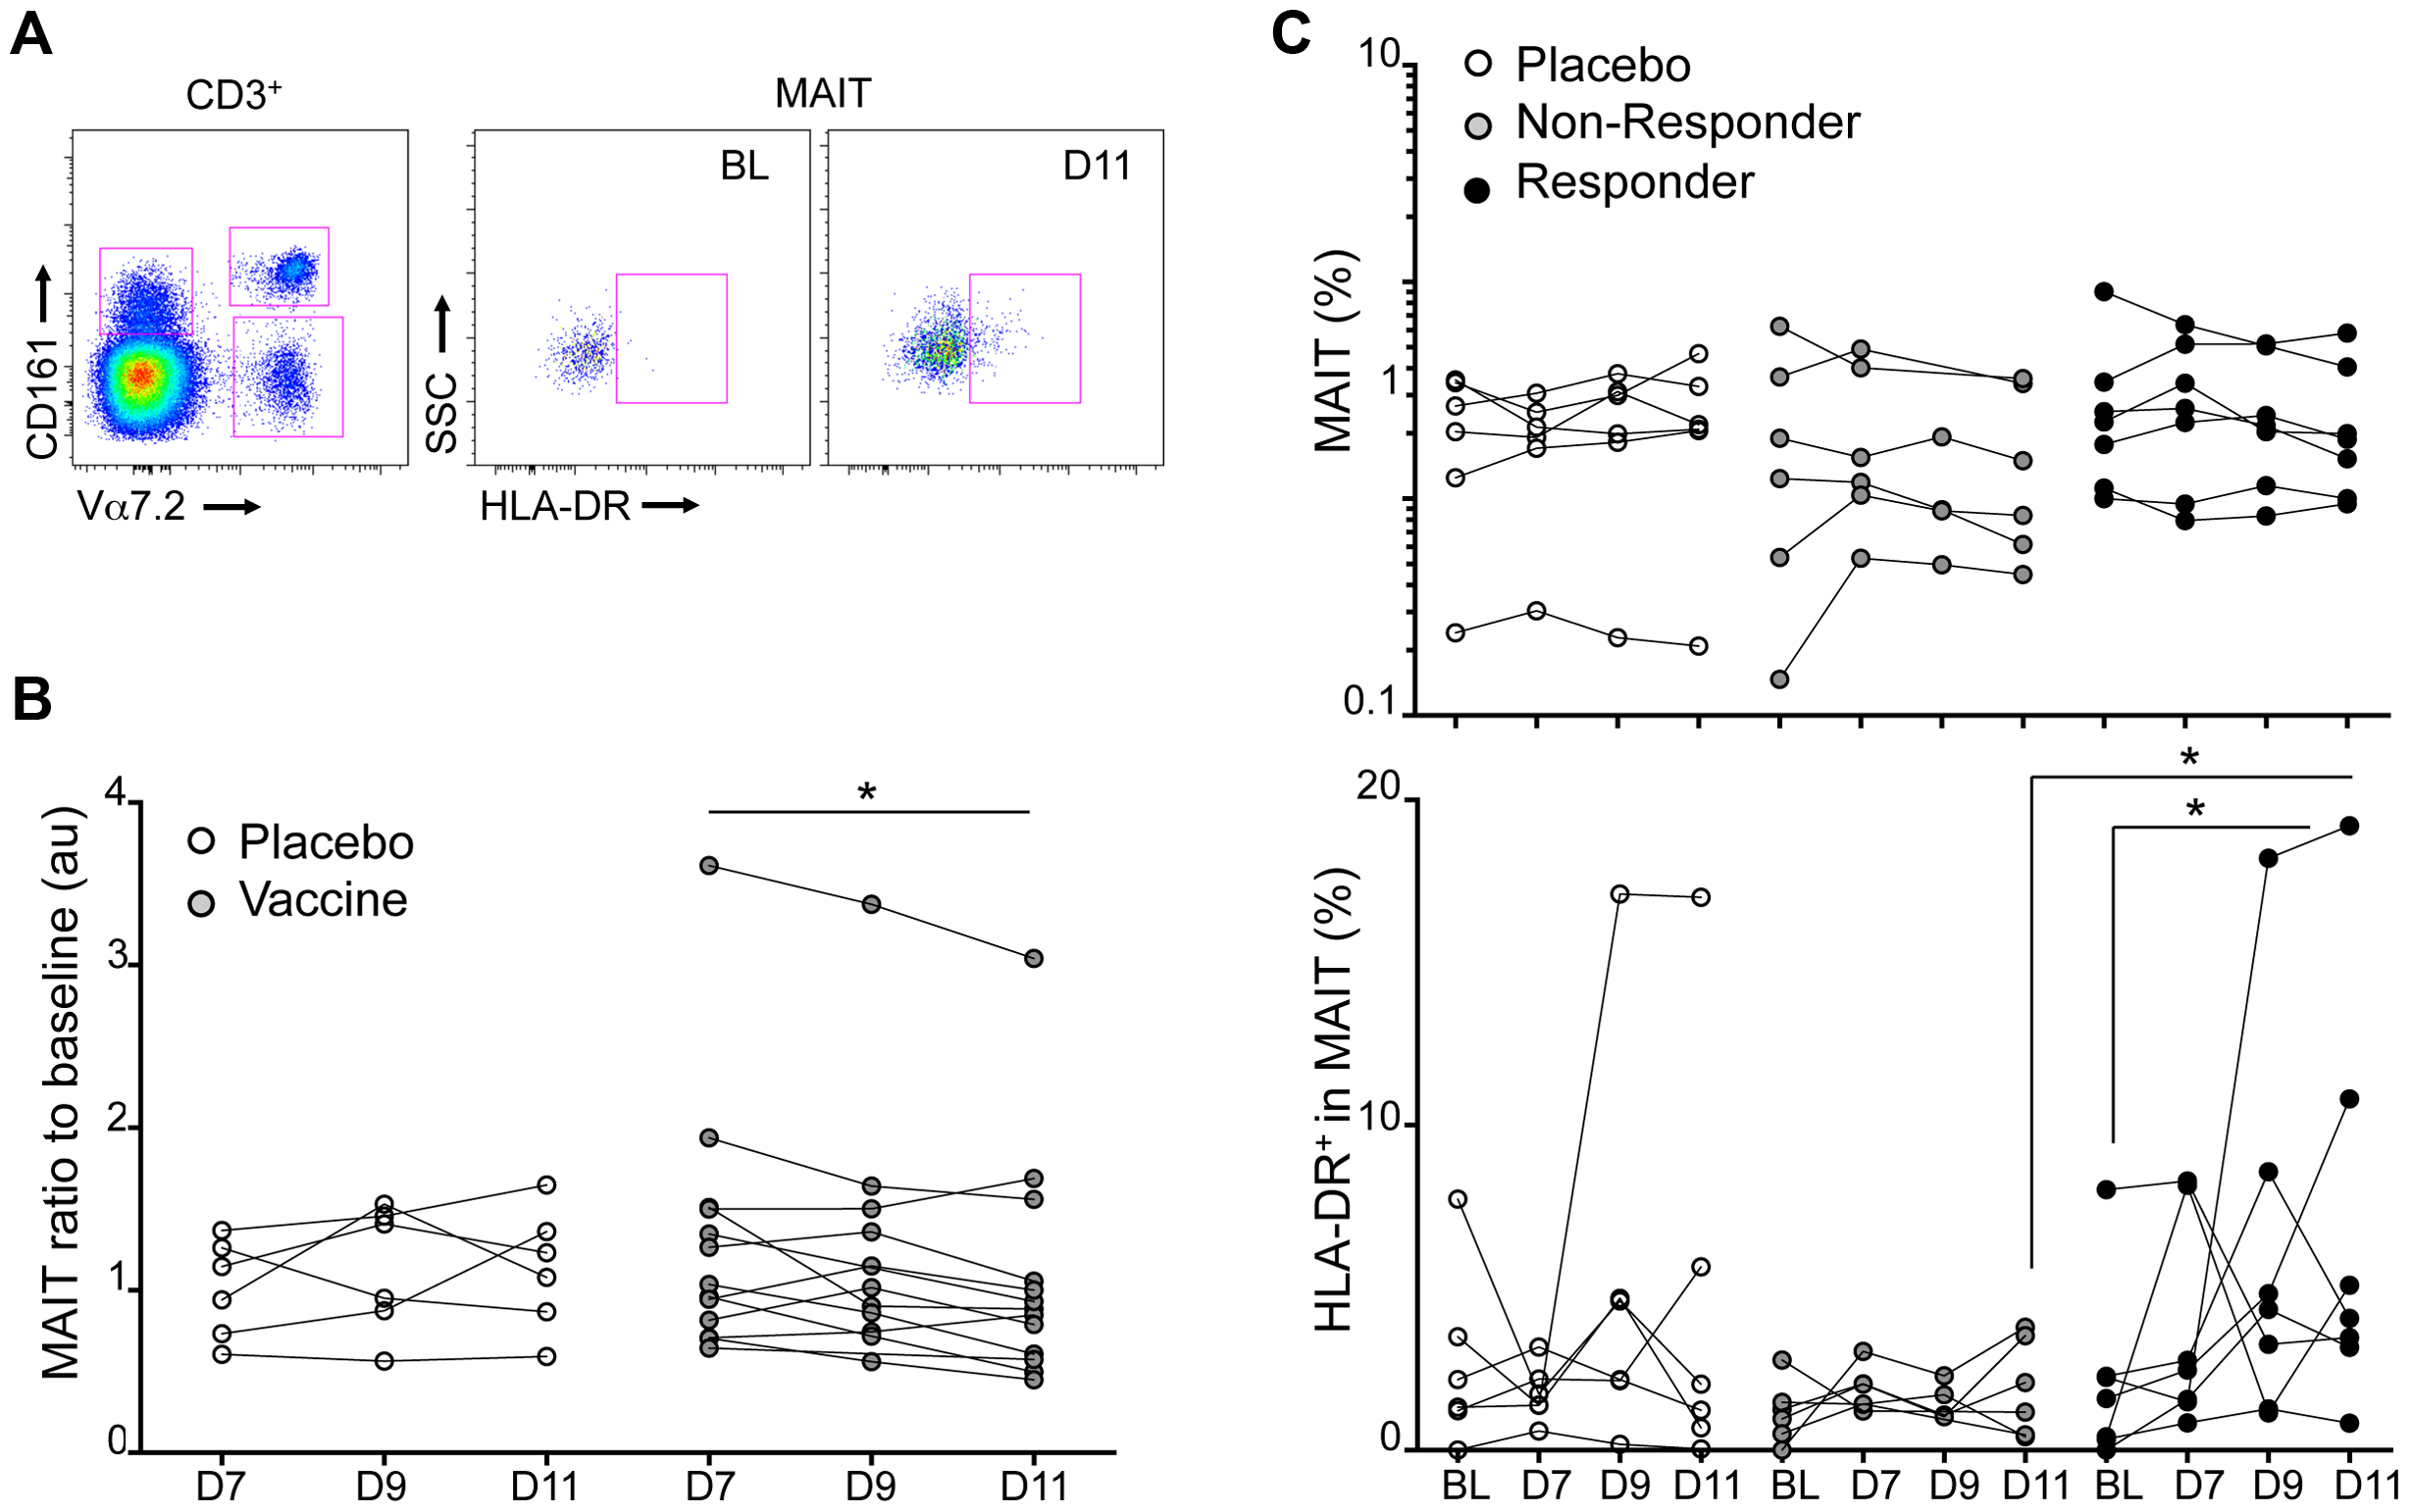 Experimental in vivo <i>Shigella flexneri</i>-infection results in MAIT cells activation.